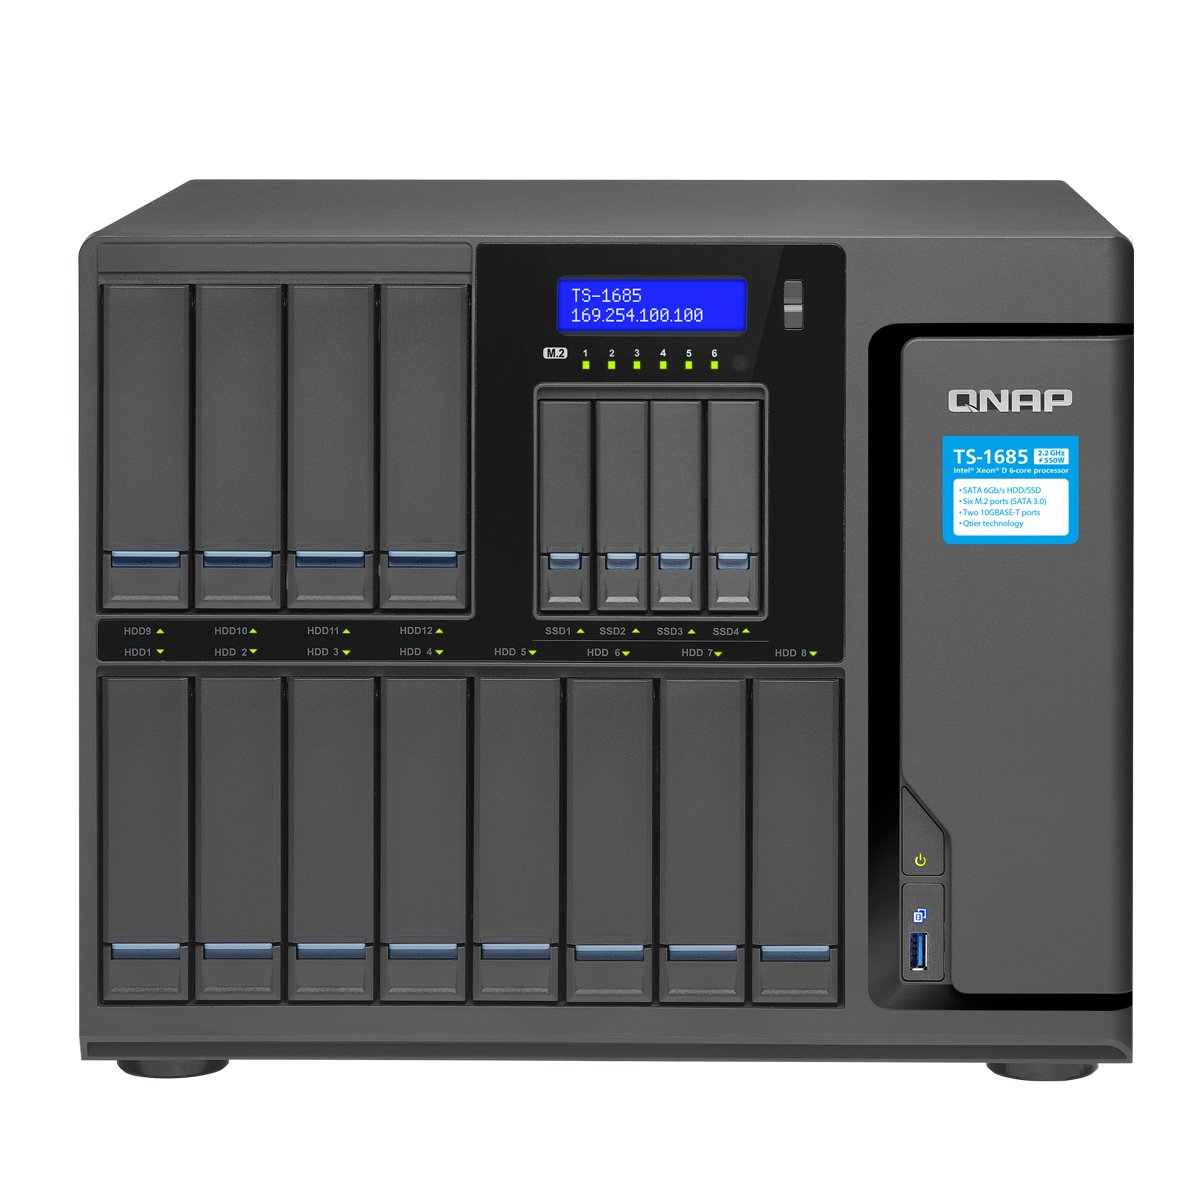 Qnap TS-1685-D1531-32G-US 12 Bay High-Capacity 10GbE iSCSI NAS by QNAP